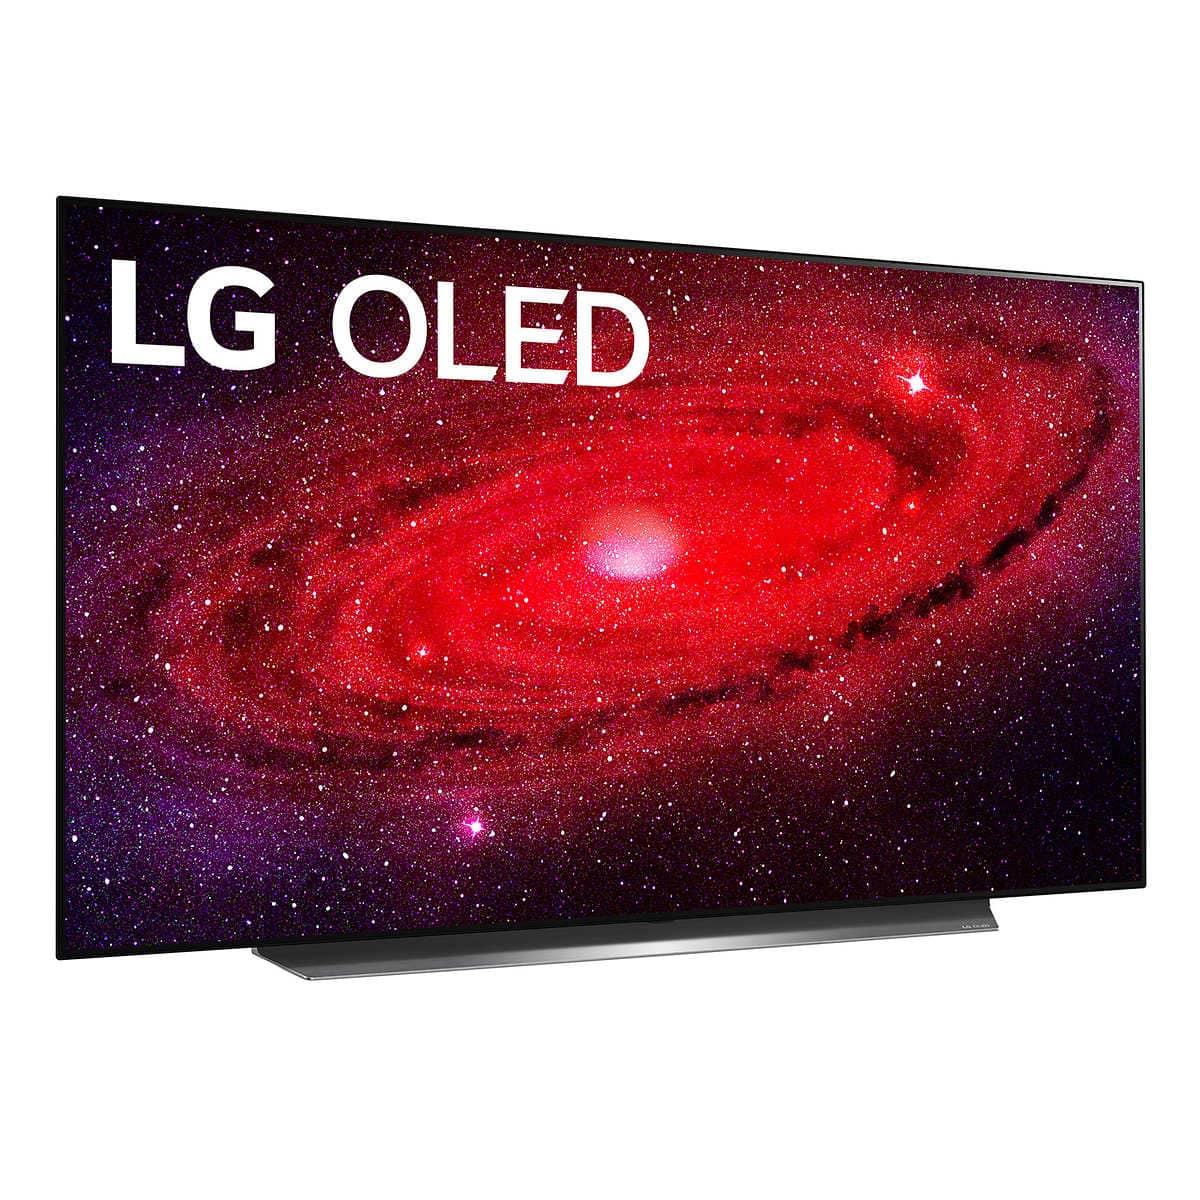 """65"""" LG CX OLED (In Store) *YMMV* $1499.99 at Costco"""